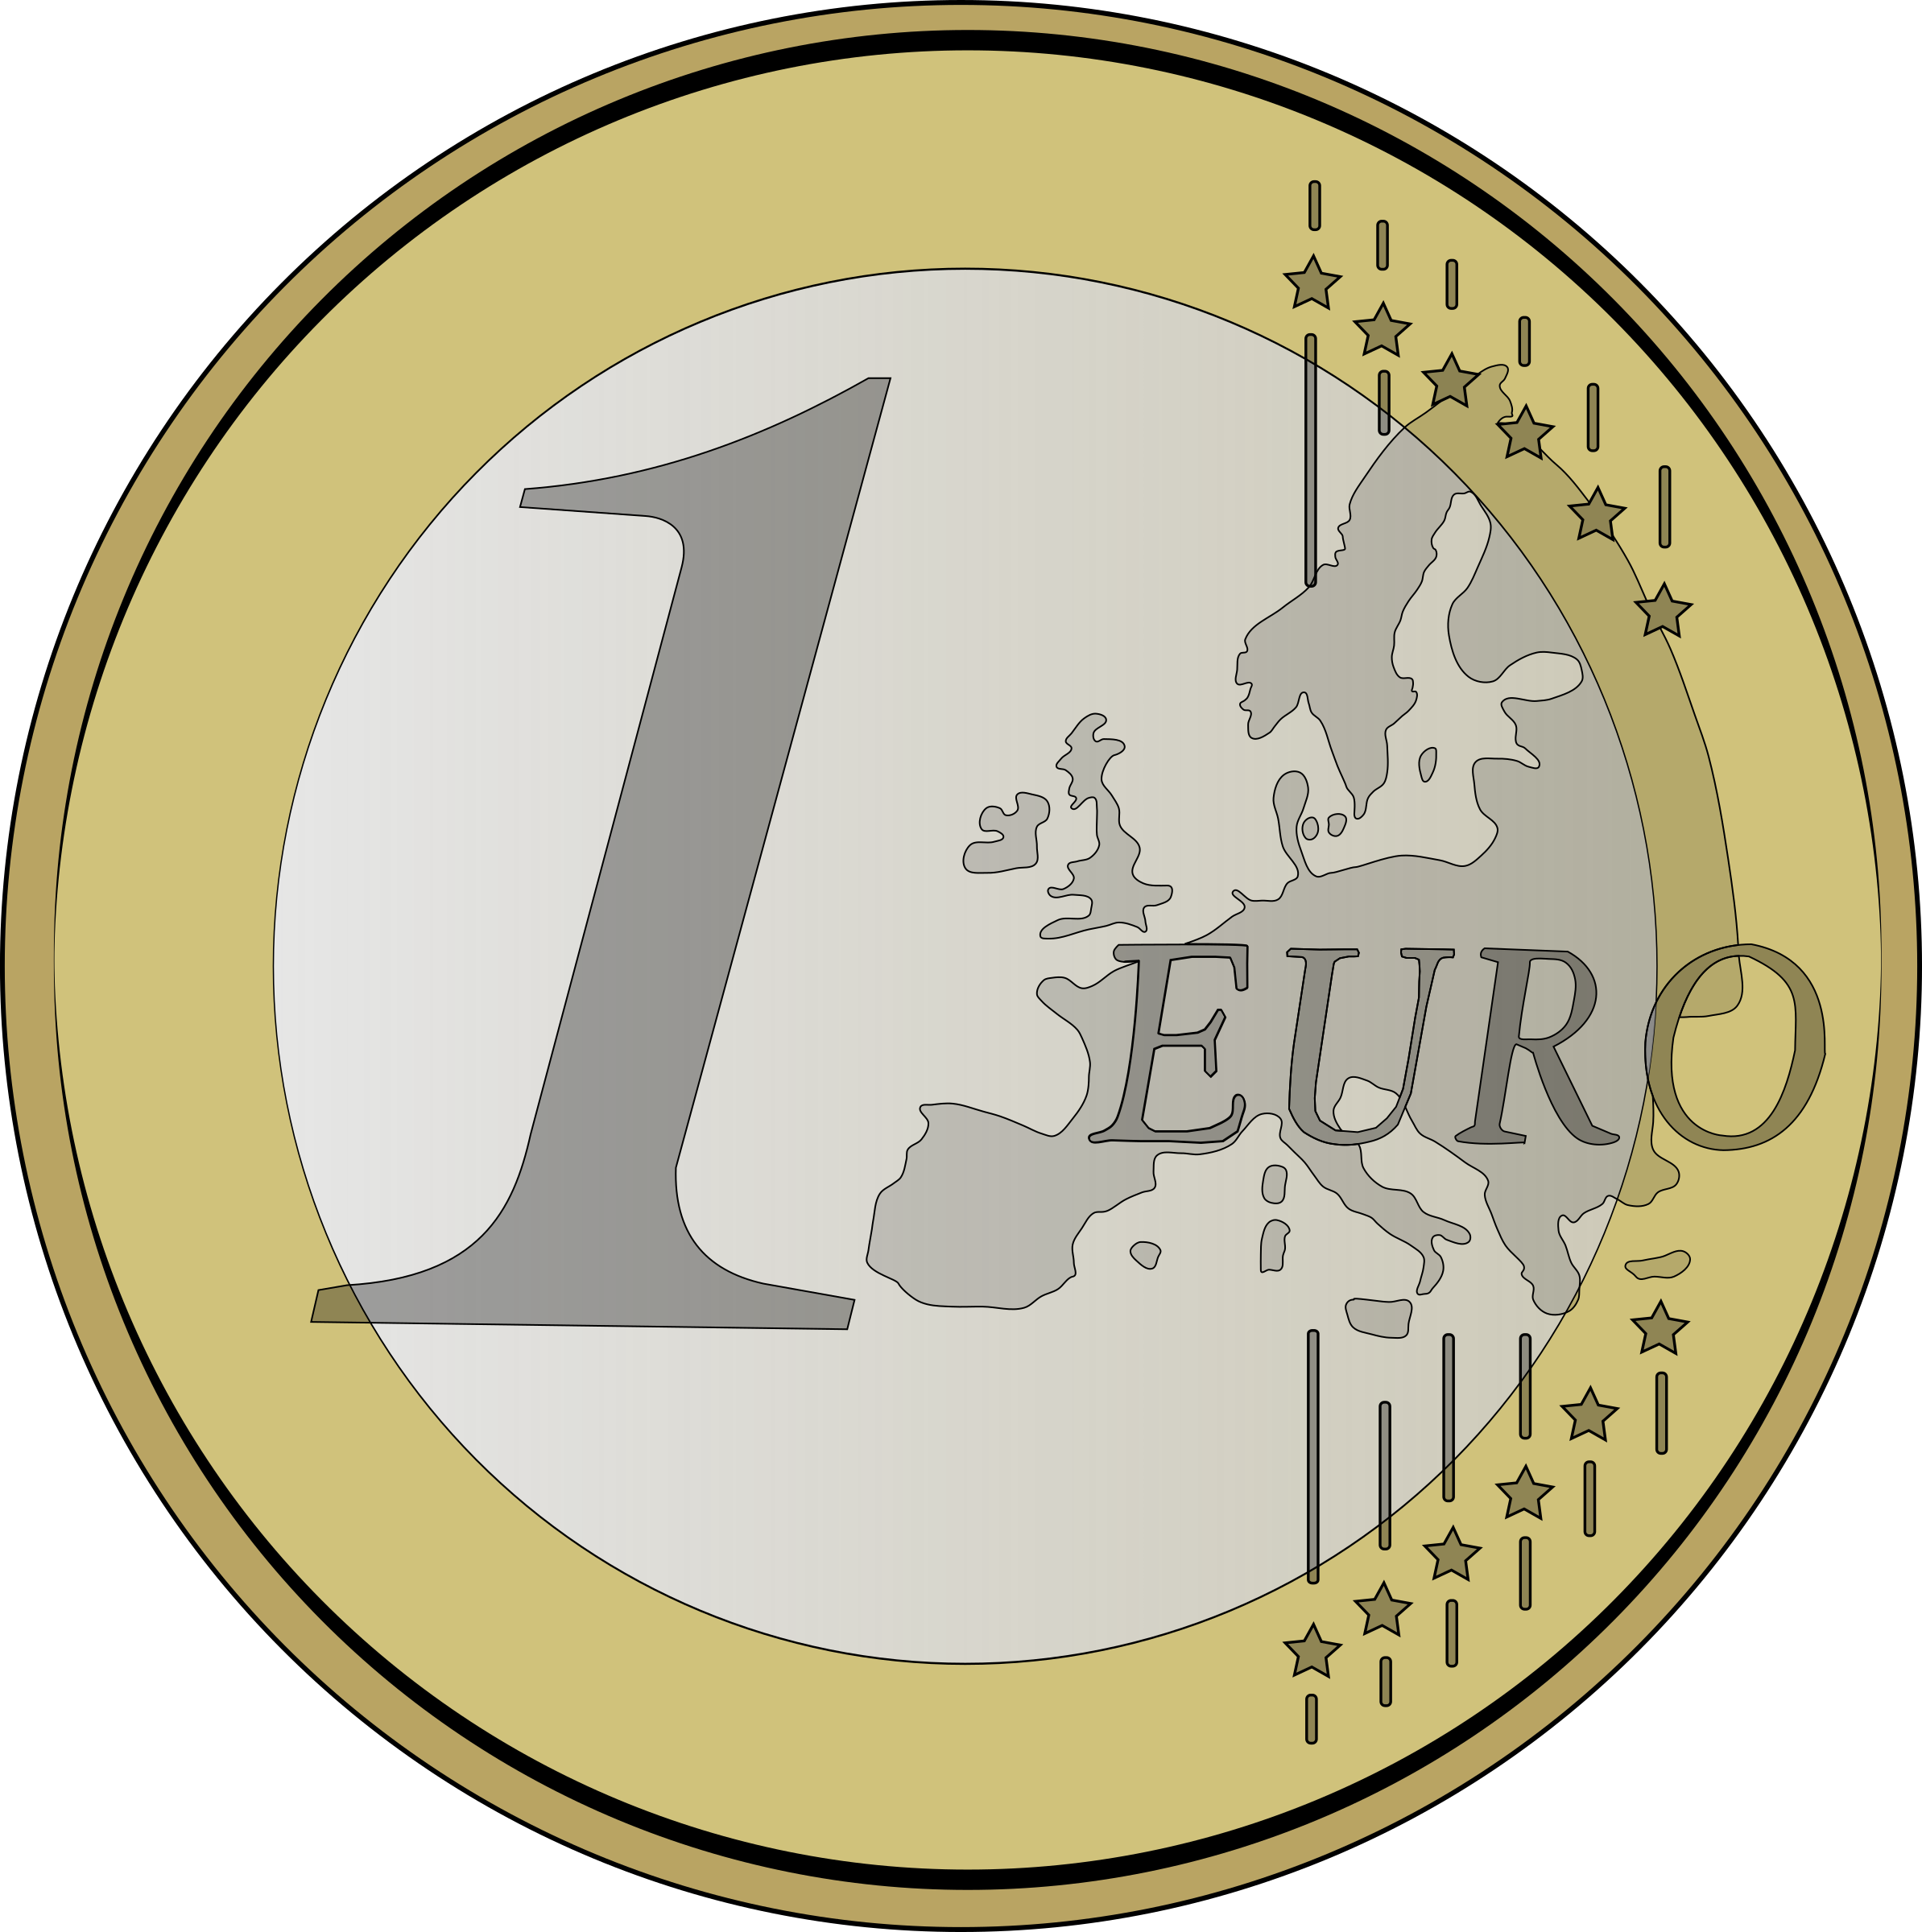 1 euro by lolonene